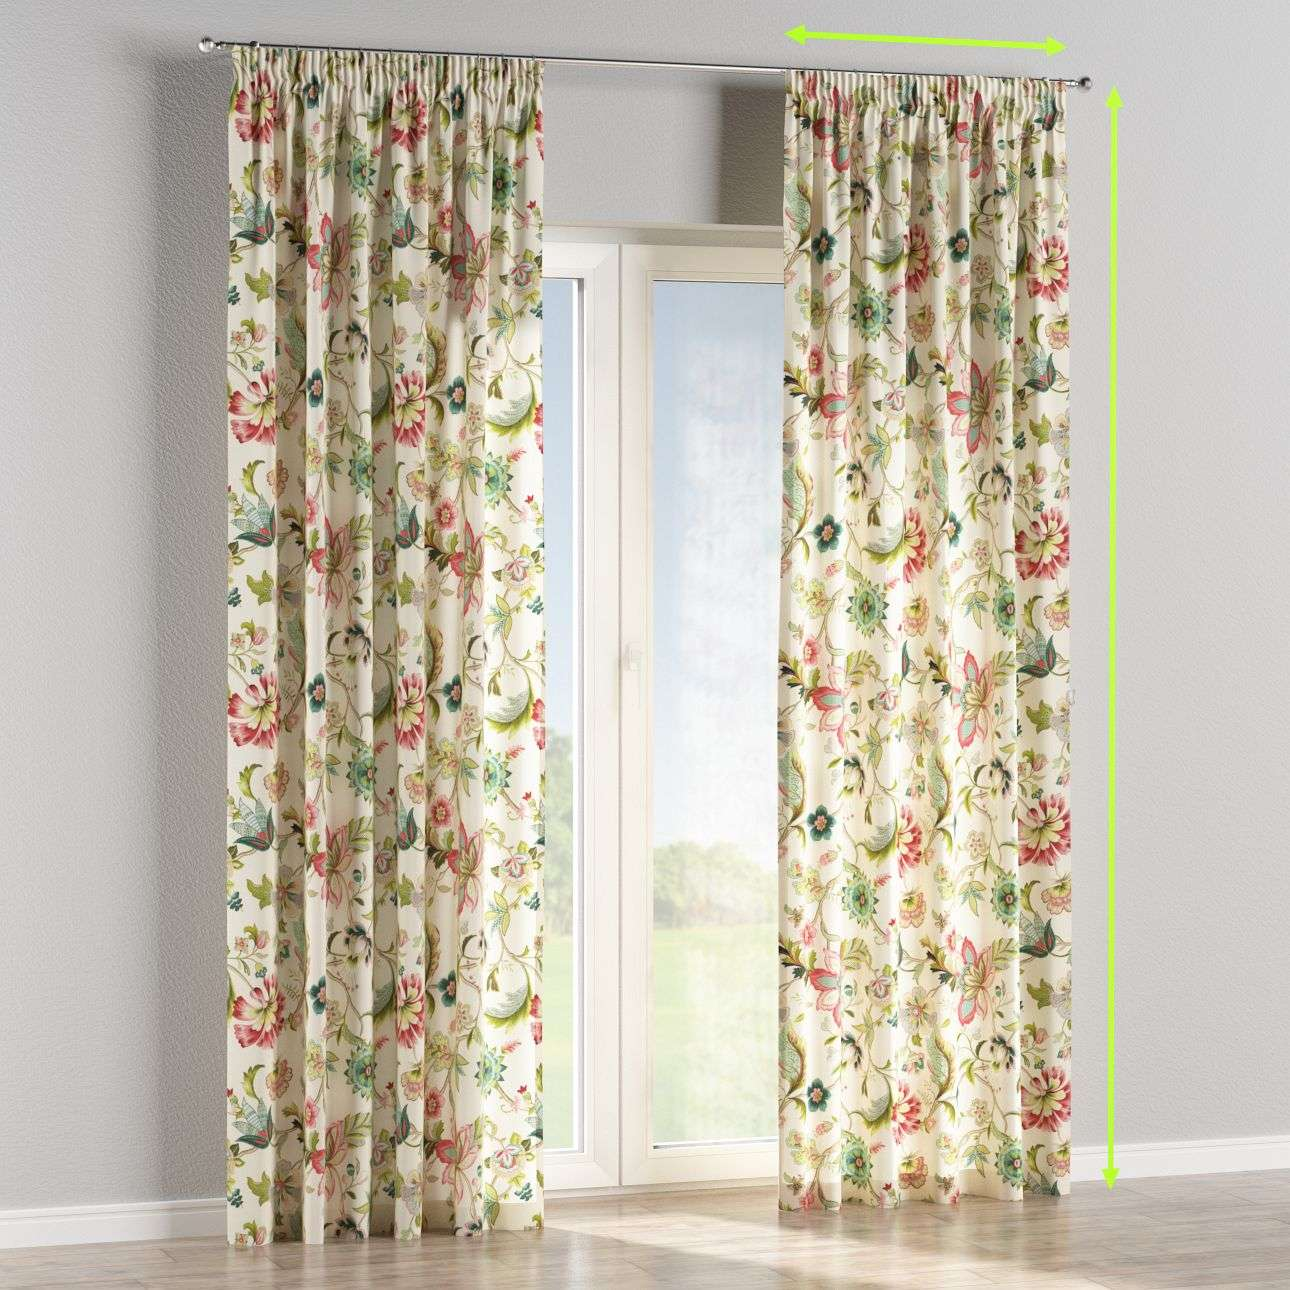 Pencil pleat lined curtains in collection Londres, fabric: 122-00